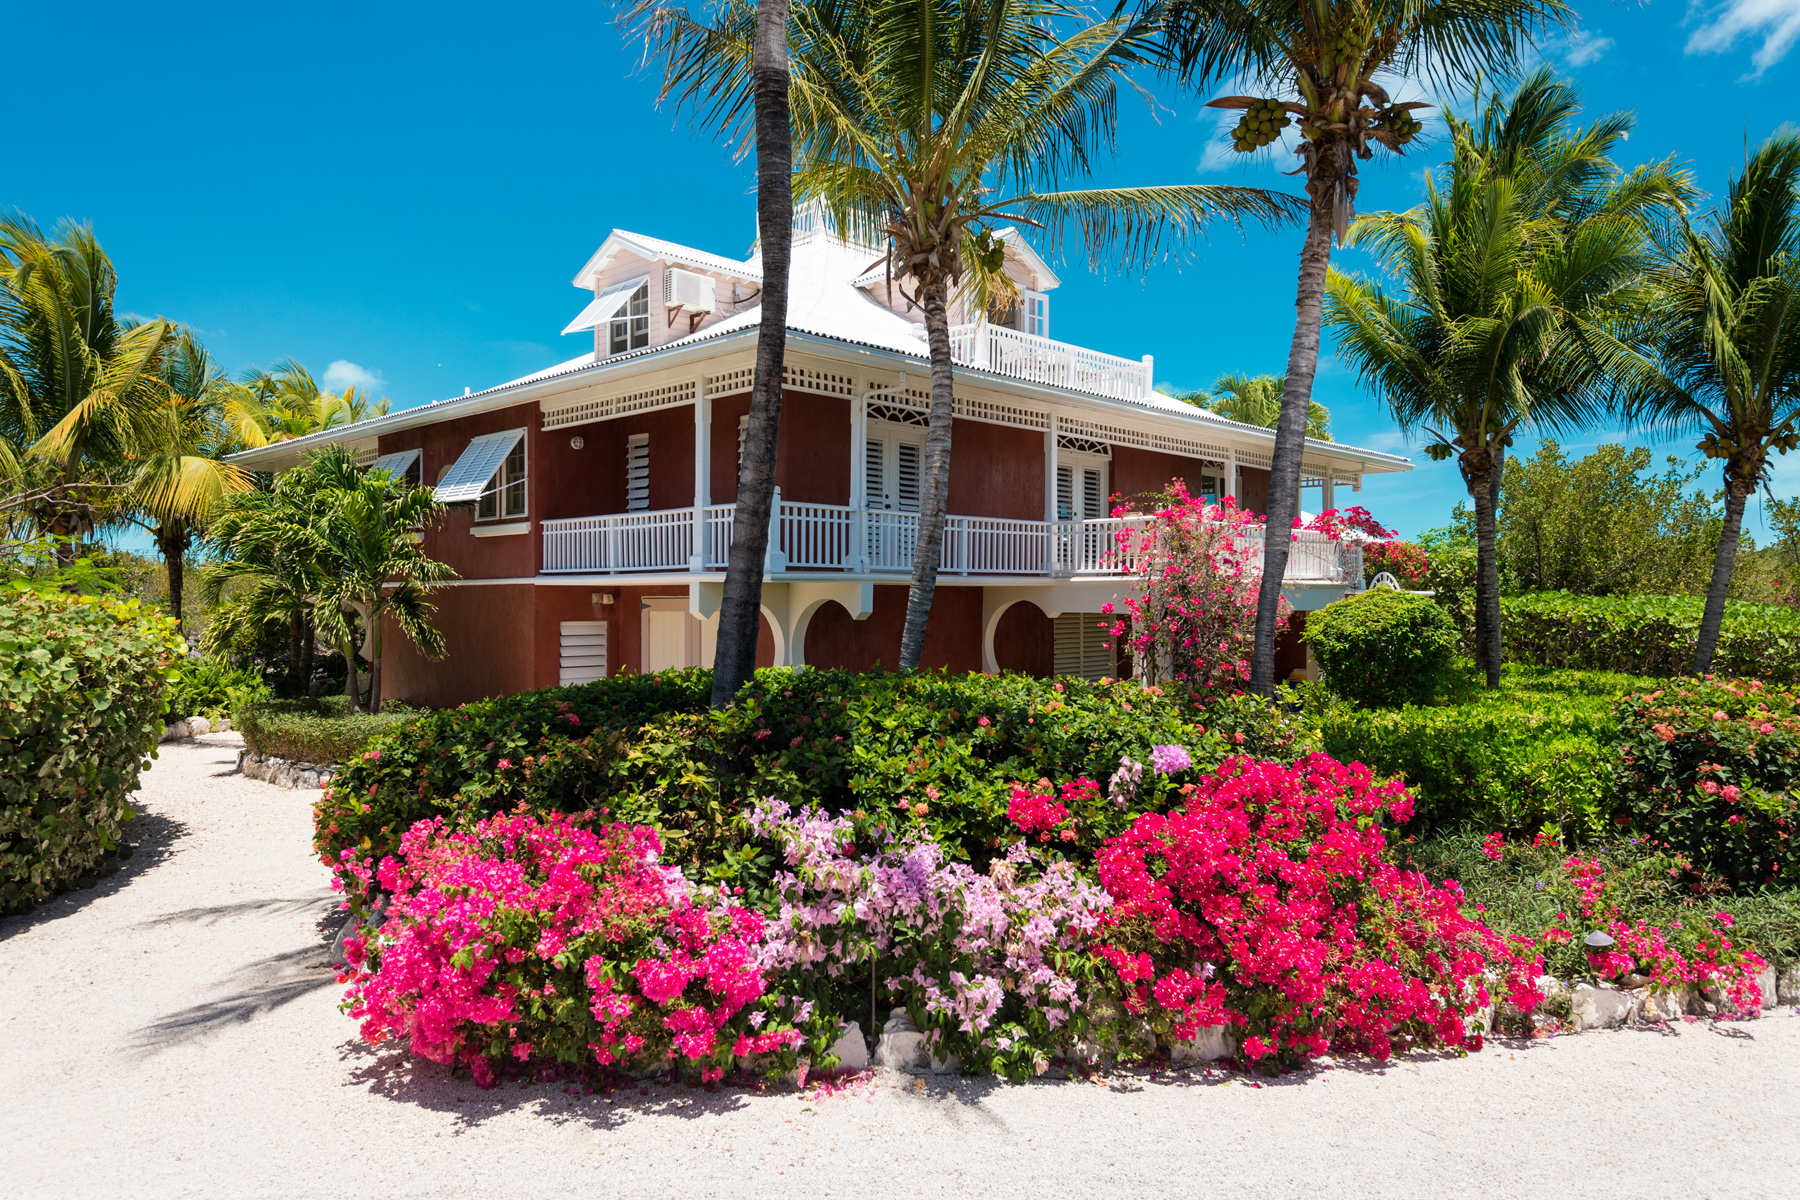 Single Family Home for Sale at Etoile De Mer Taylor Bay, Providenciales, Turks And Caicos Islands